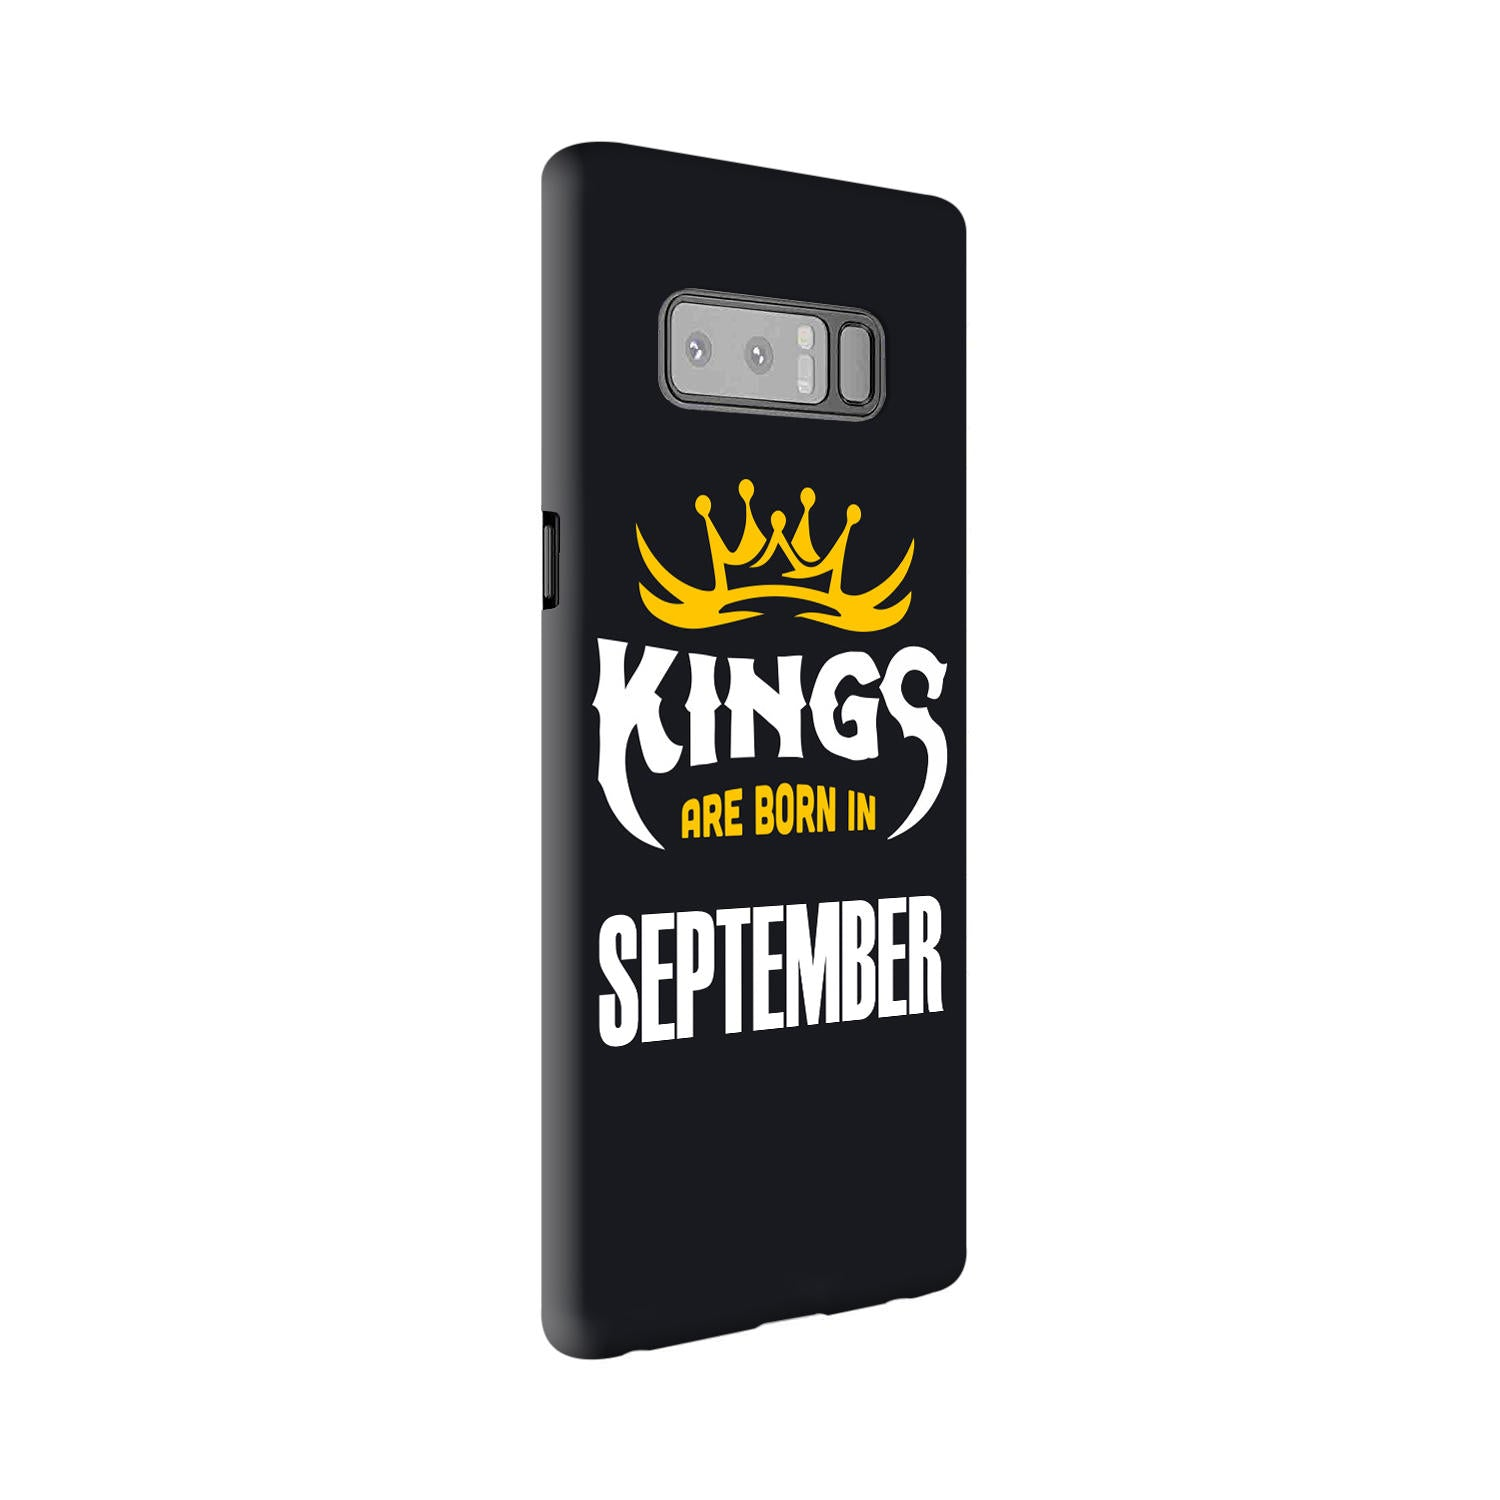 Kings September - Narcissist Samsung Galaxy Note 8 Mobile Cover Case - MADANYU